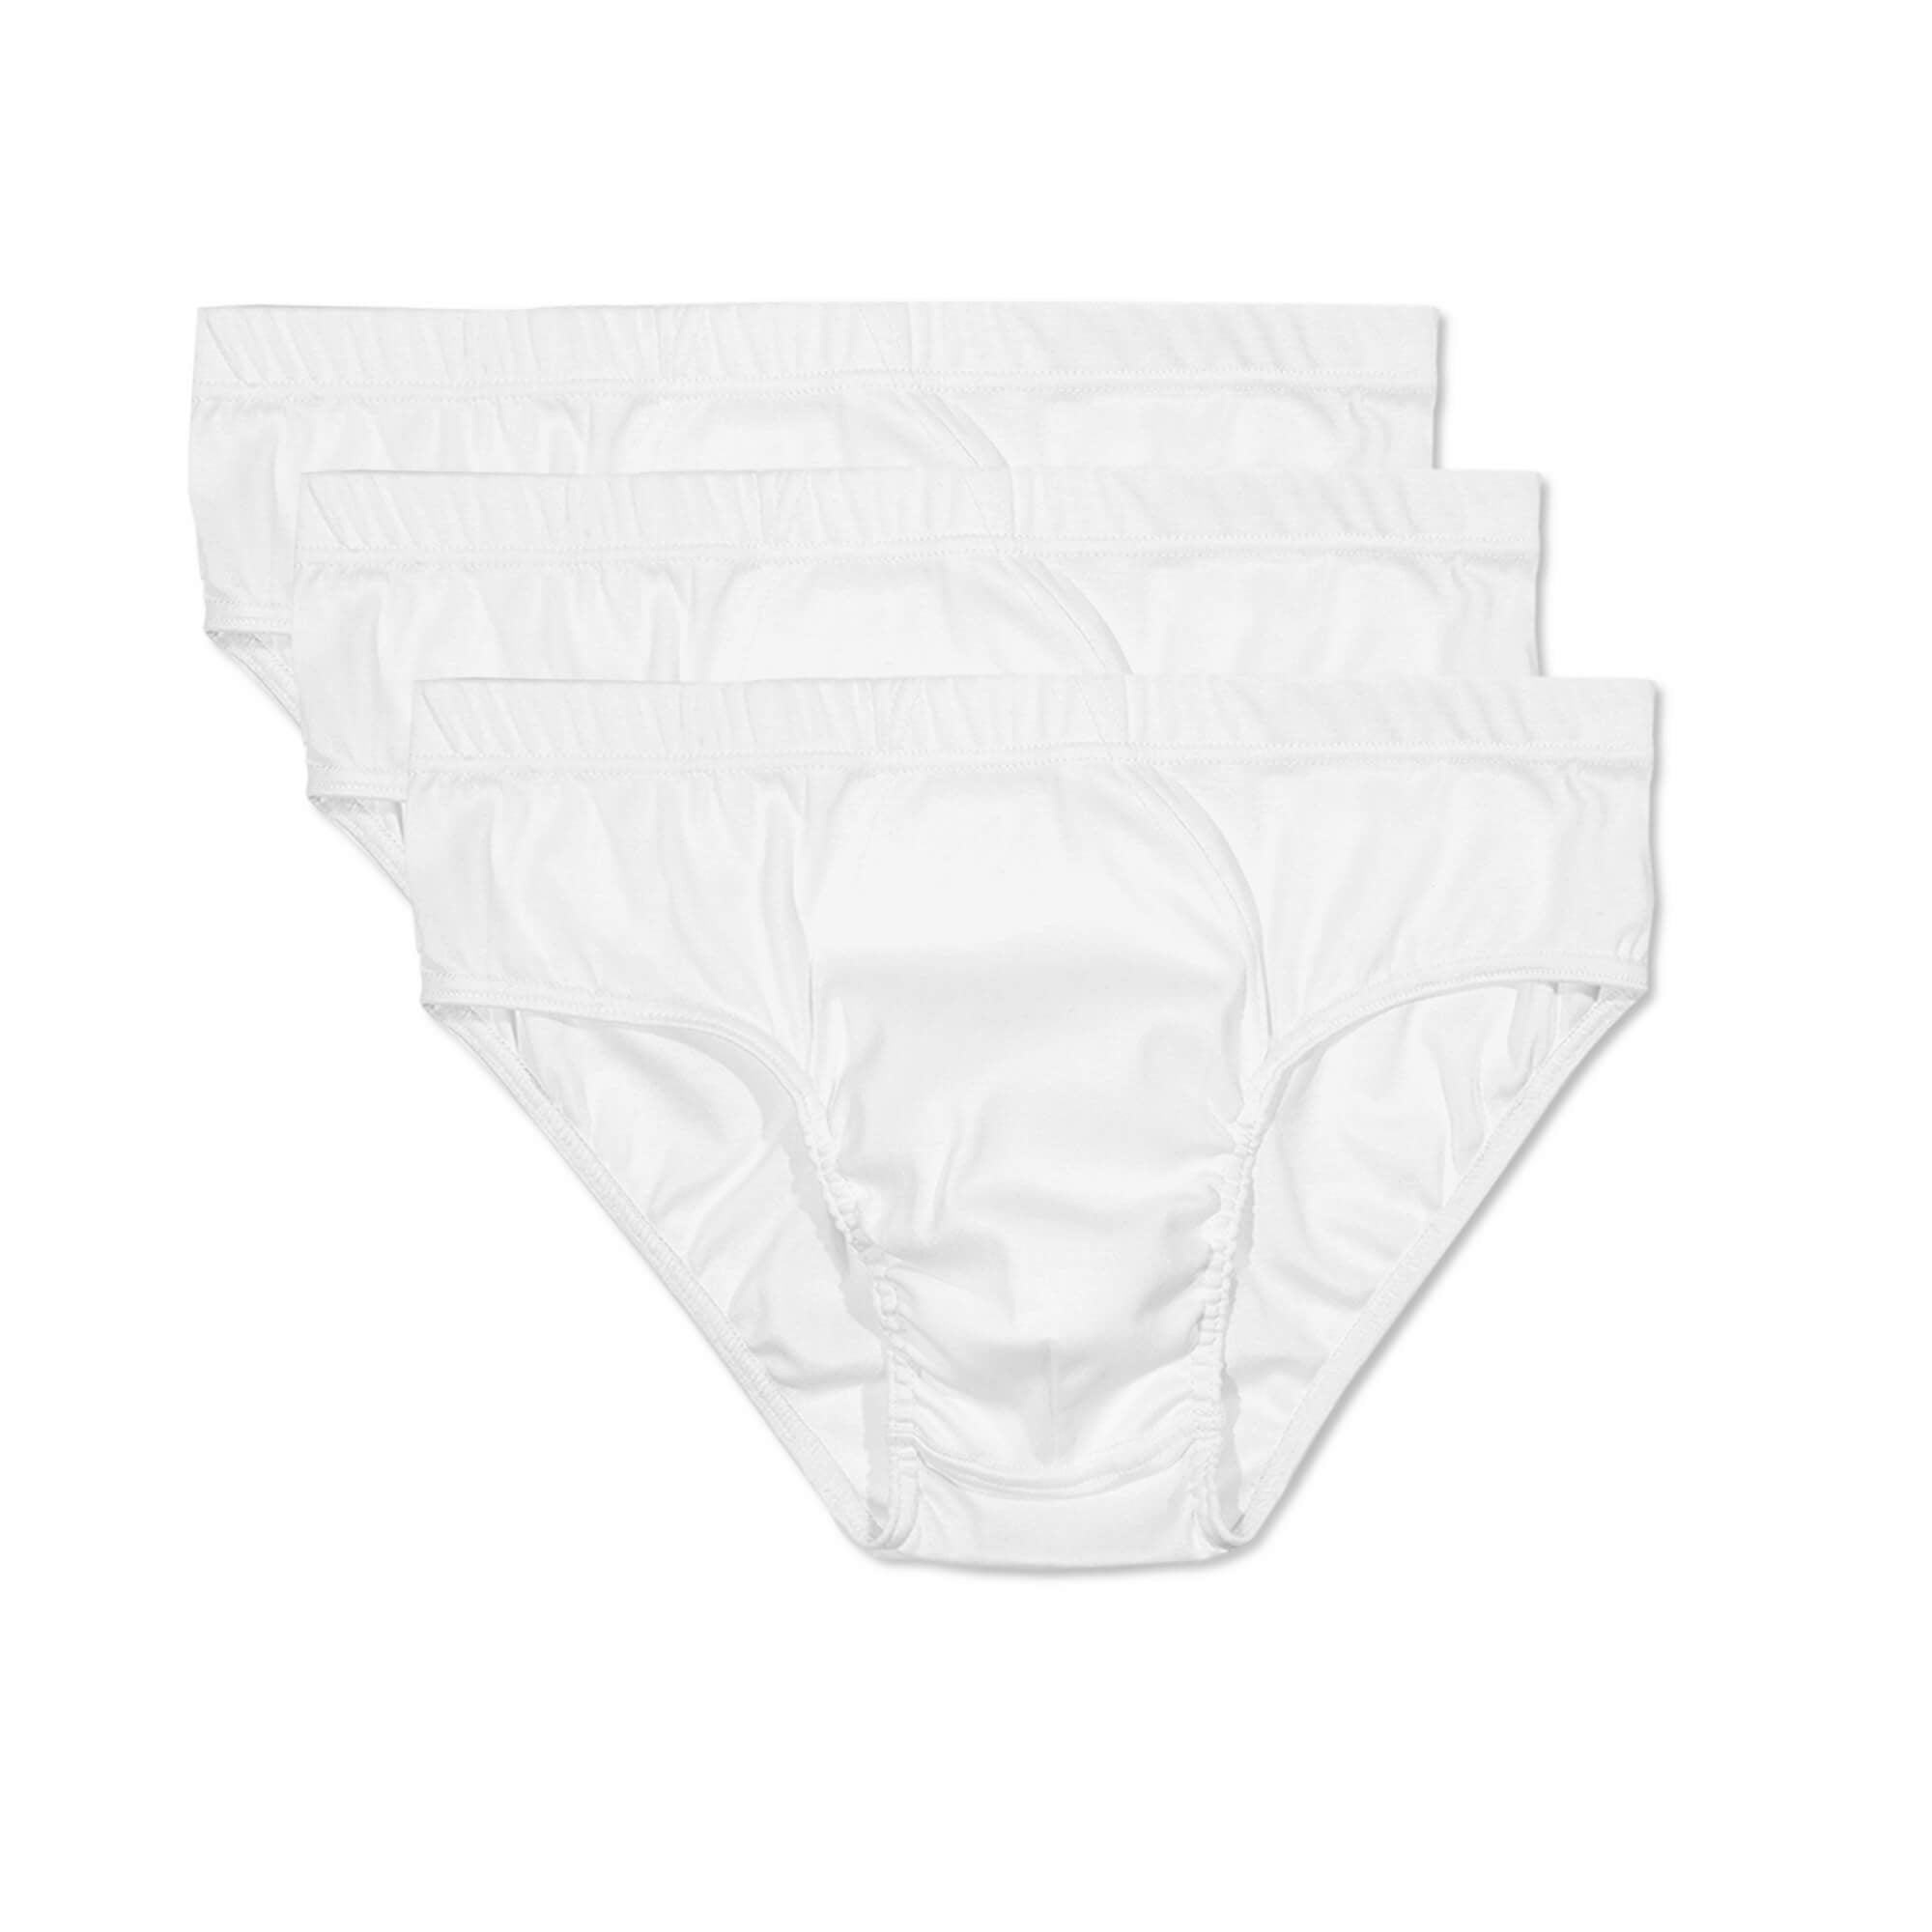 Mens Underwear - The Fifth Men's Briefs 3 Pack - White⎪Etiquette Clothiers